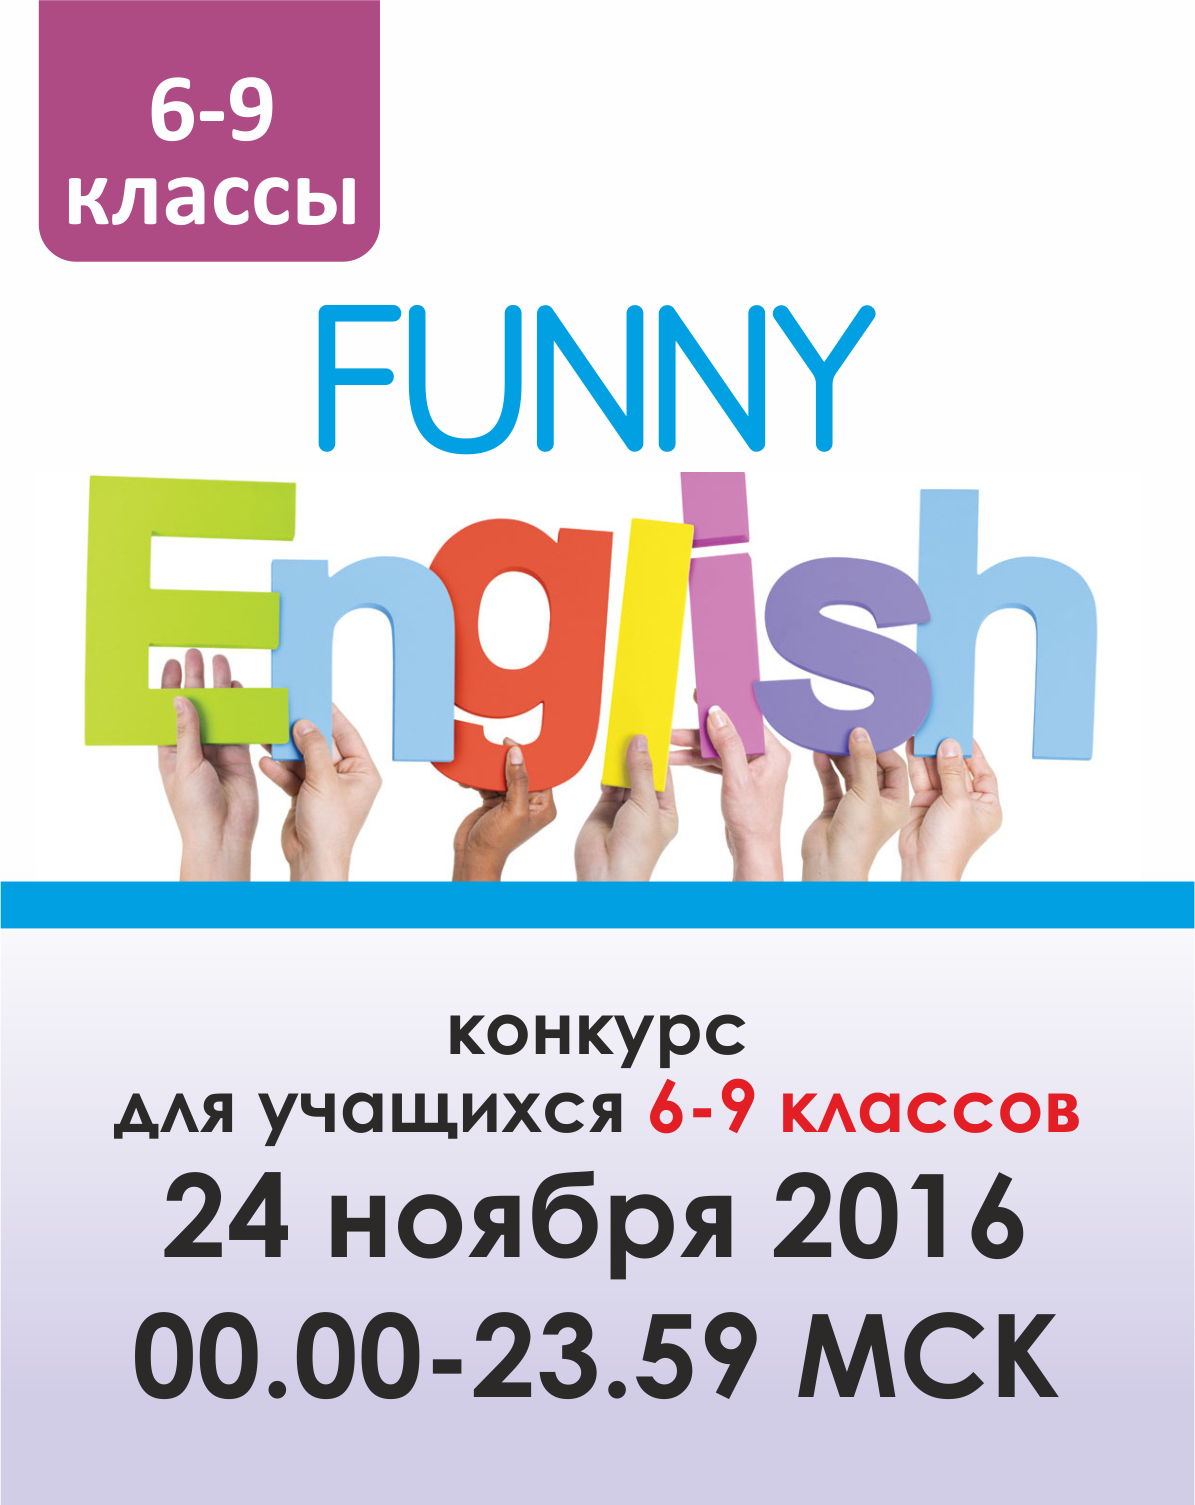 Funny English (6-9 классы)